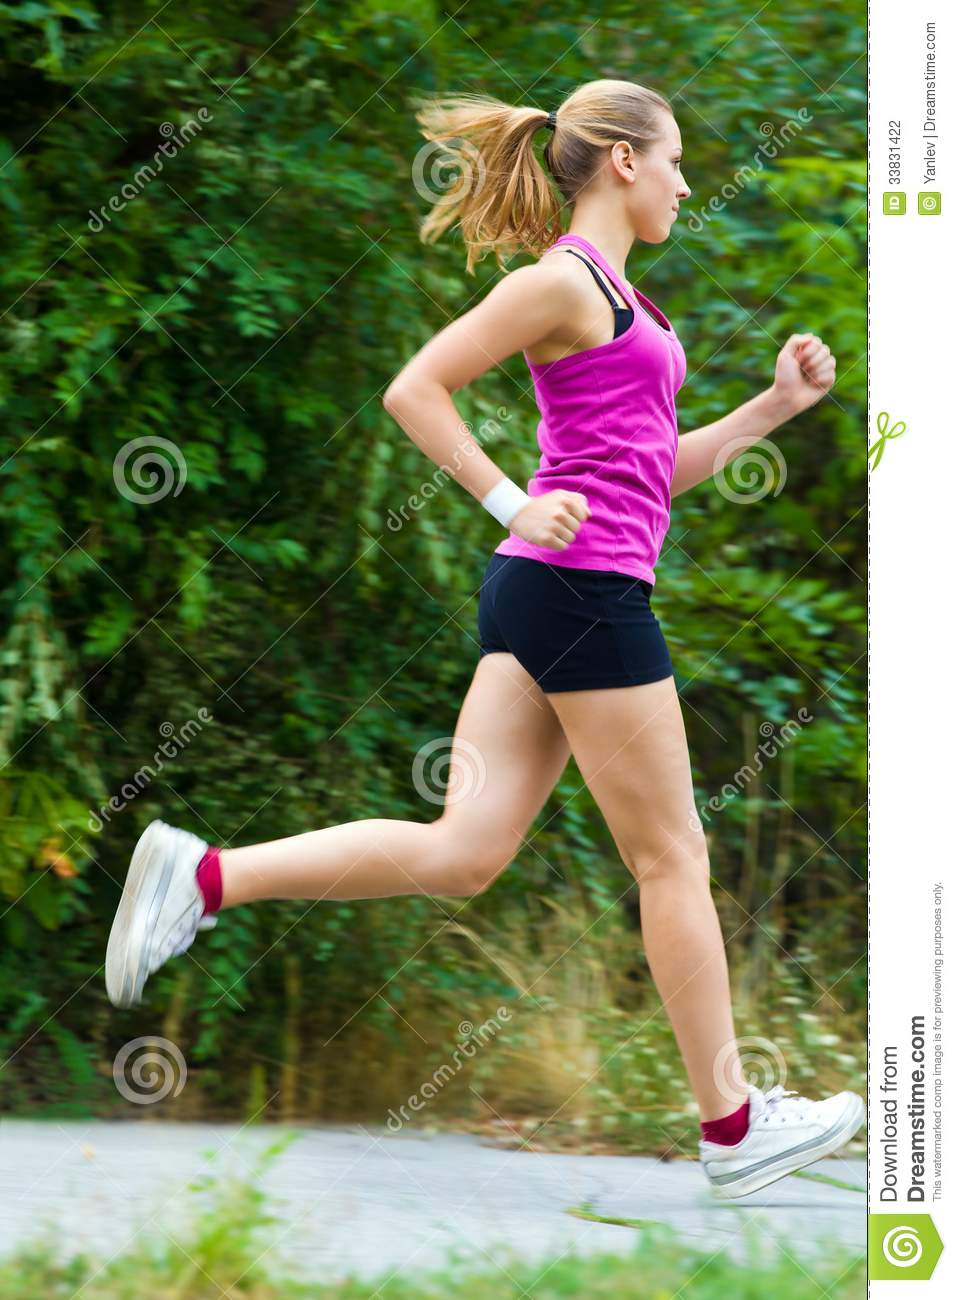 Really. happens. sexy hot runner girl running similar situation